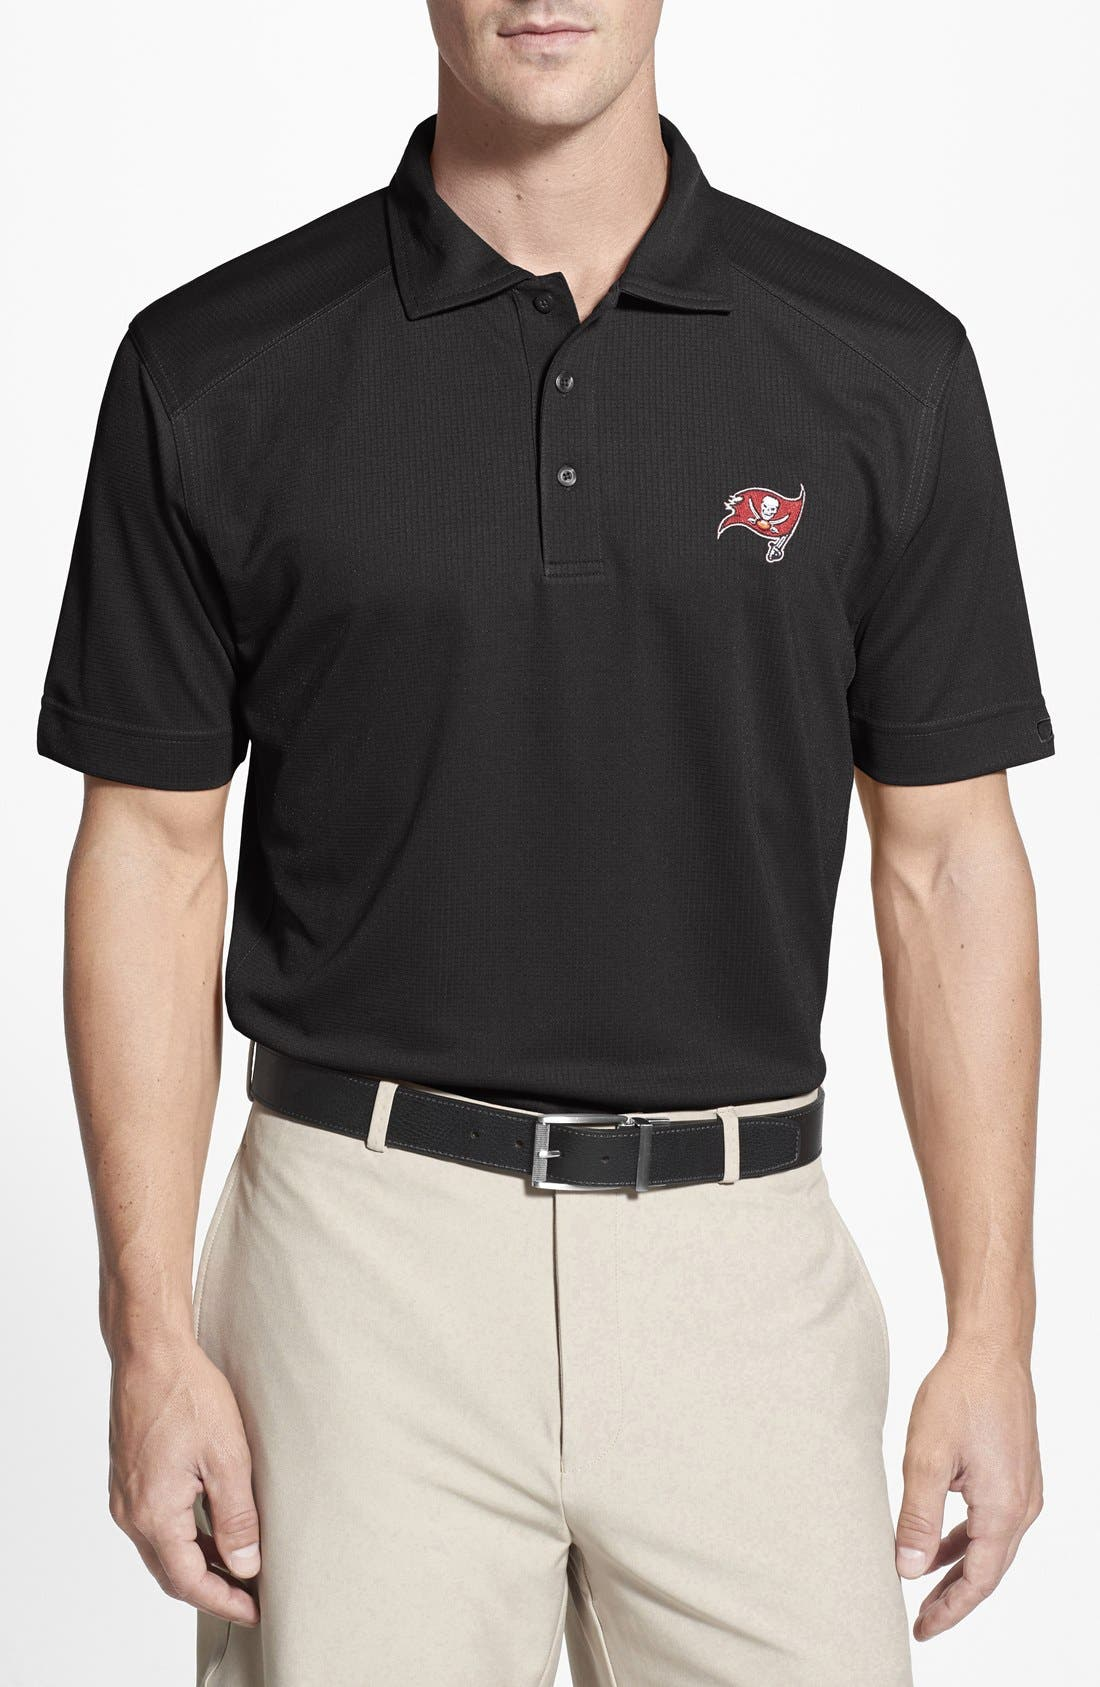 Tampa Bay Buccaneers - Genre DryTec Moisture Wicking Polo,                         Main,                         color, 001